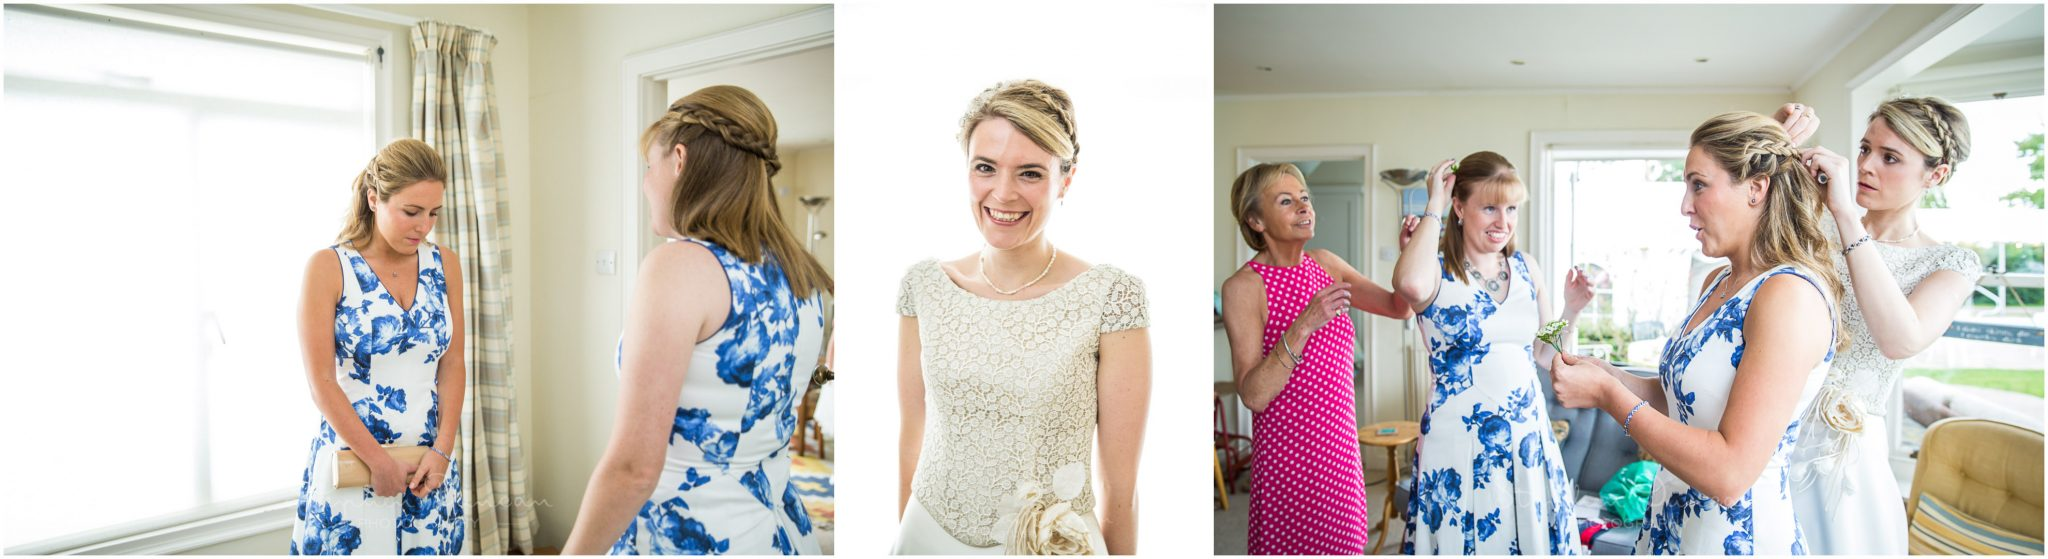 Lymington wedding photography bride with bridesmaids